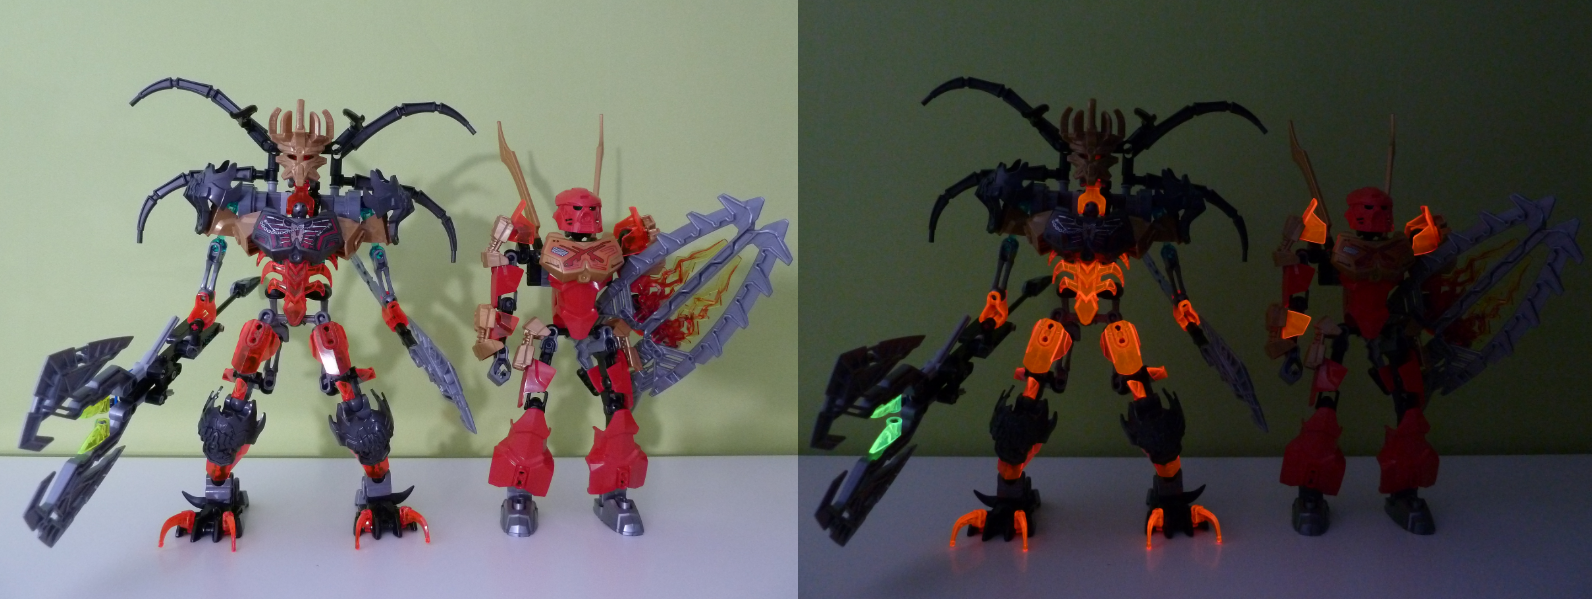 Rayques Blog Lego Black Light 70794 70795 Combination Model Bionicle Skull Scorpio When Comparing The New Tahu 70787 With Its A More Or Less Similar Height Difference Towards Older Warriors Their